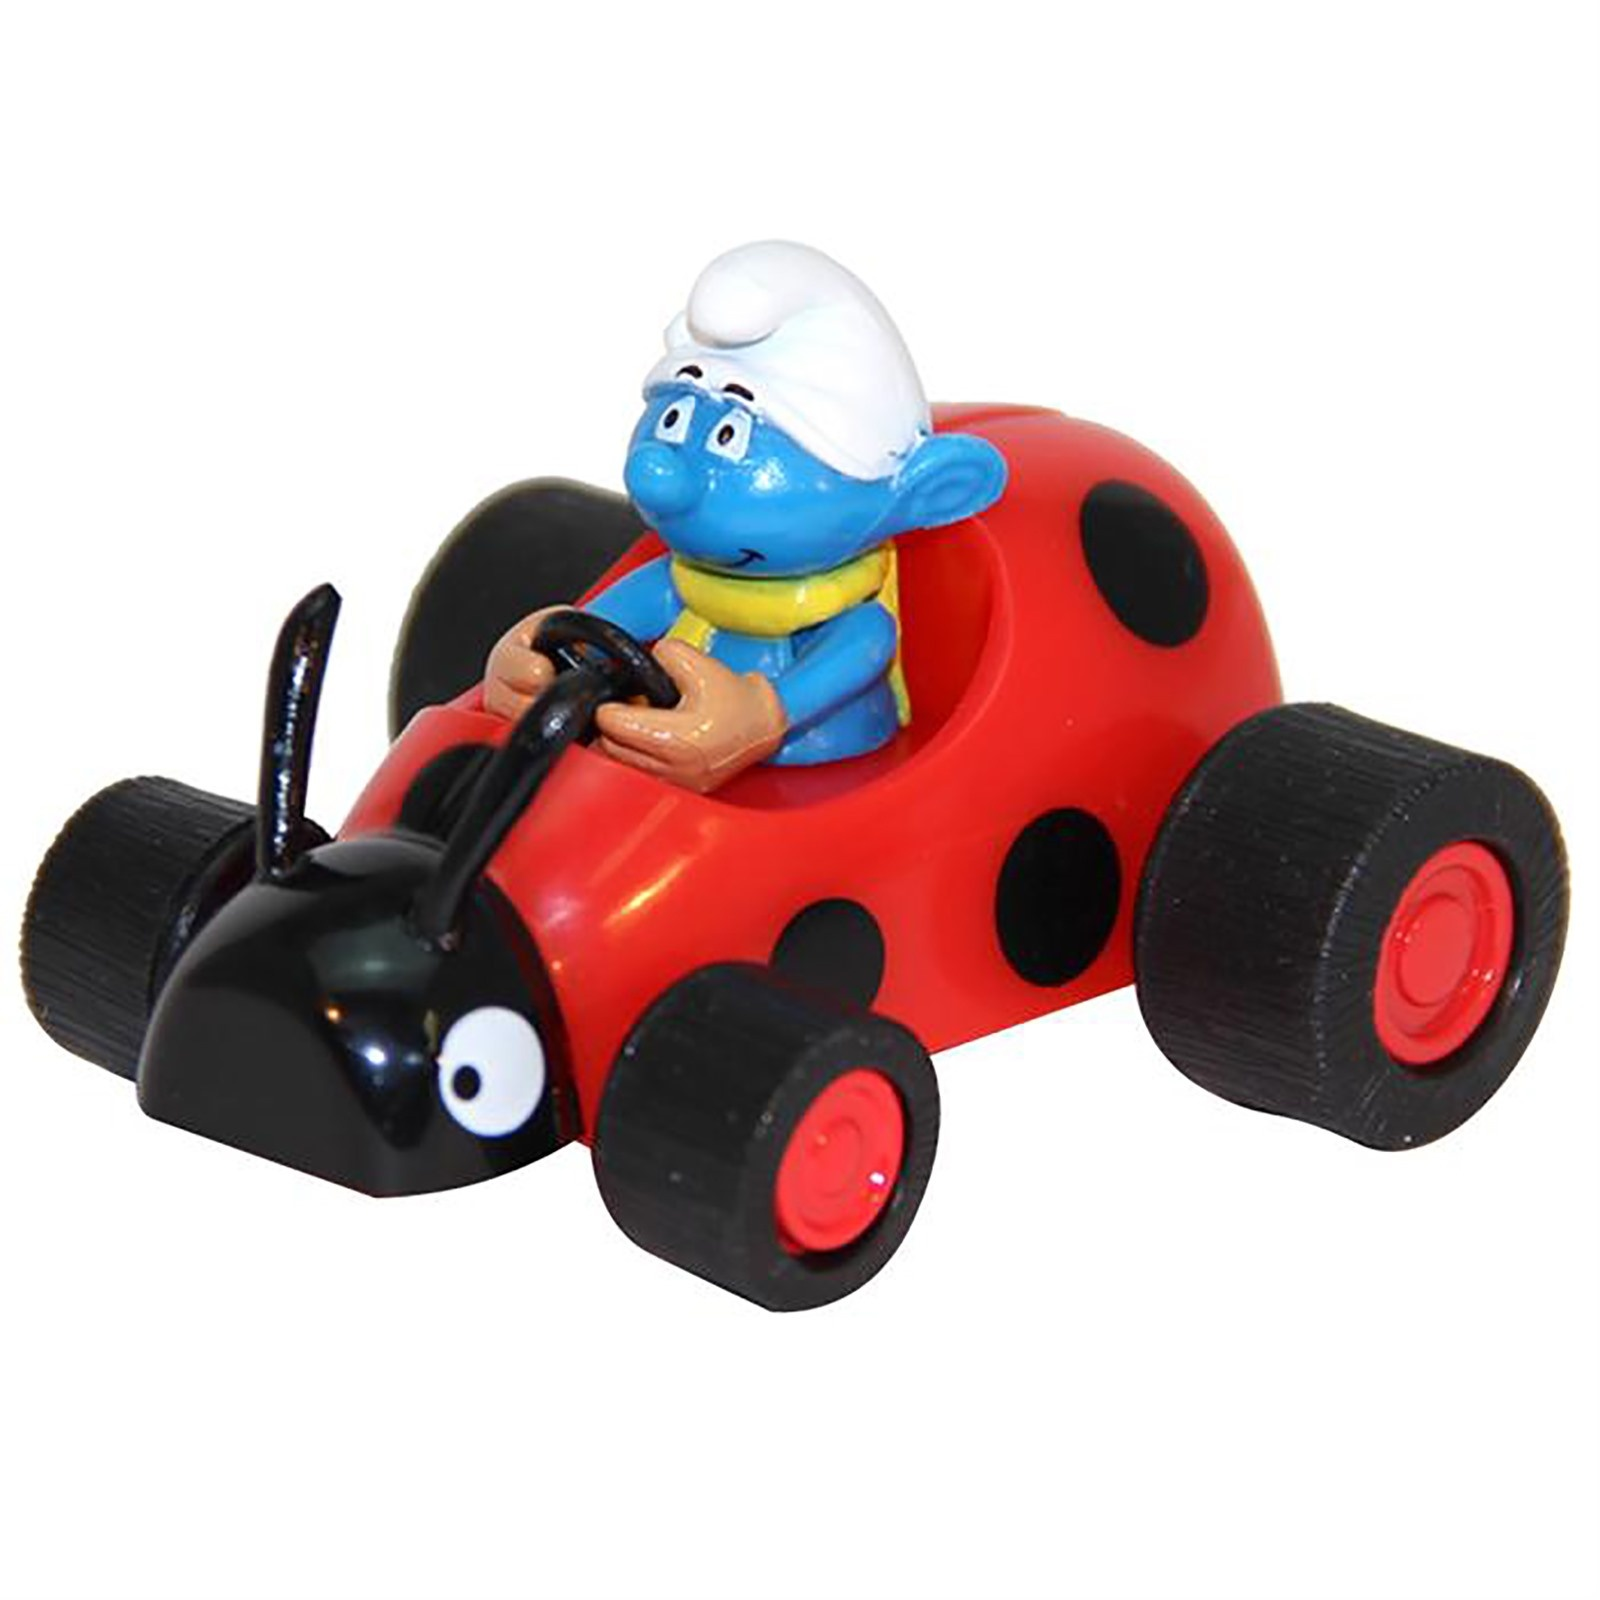 ebebek Neco Toys Smurfs Check - Drop Figured Vehicles